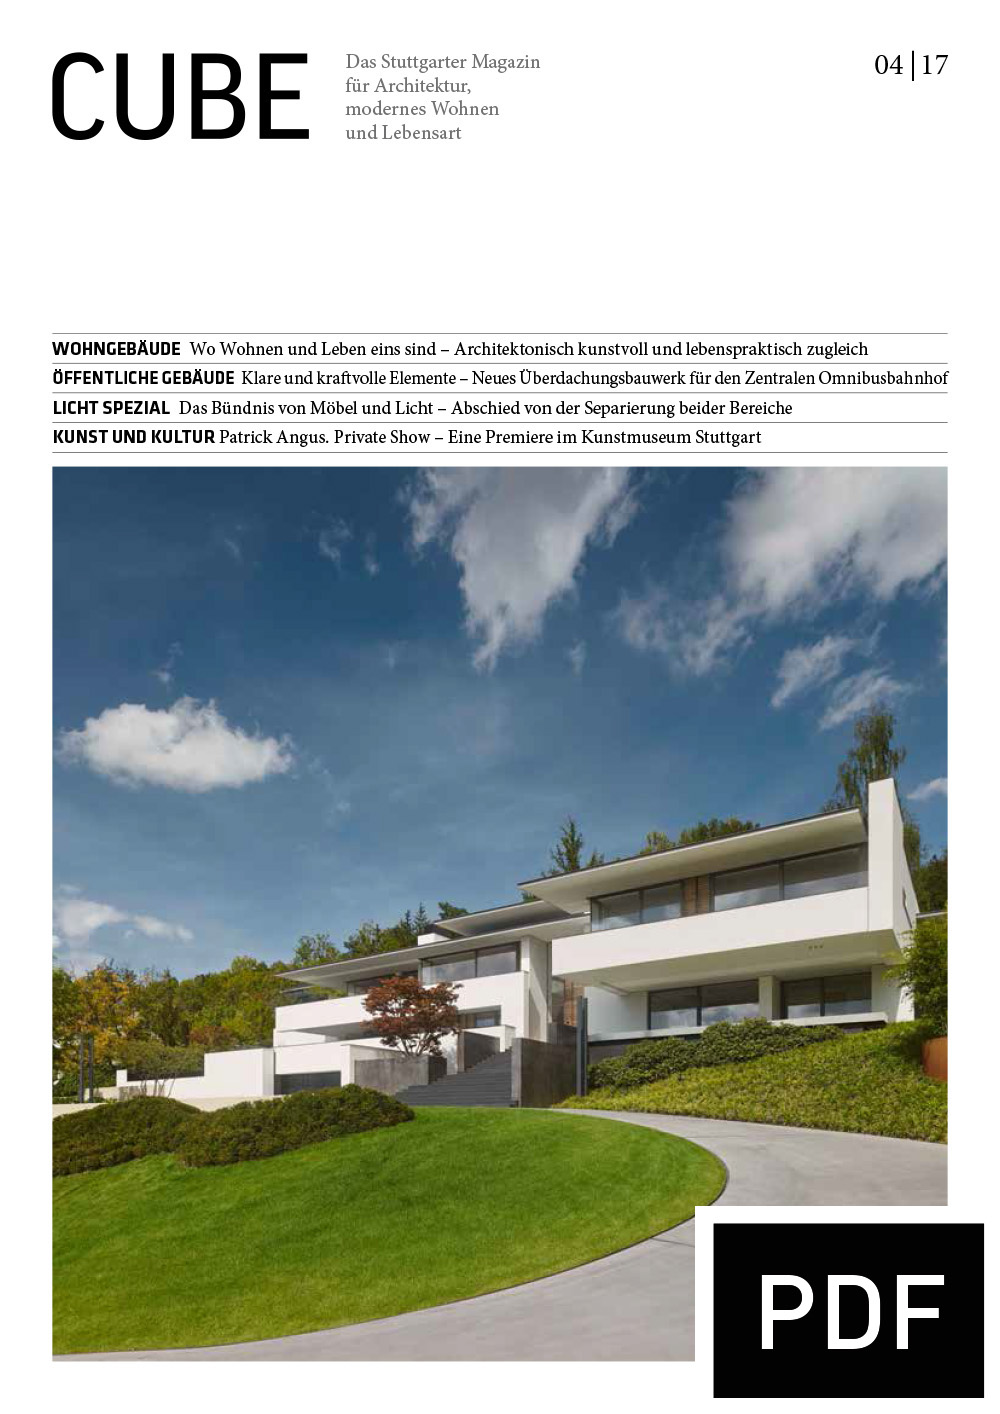 Publications Alexander Brenner Architects Villas And Houses